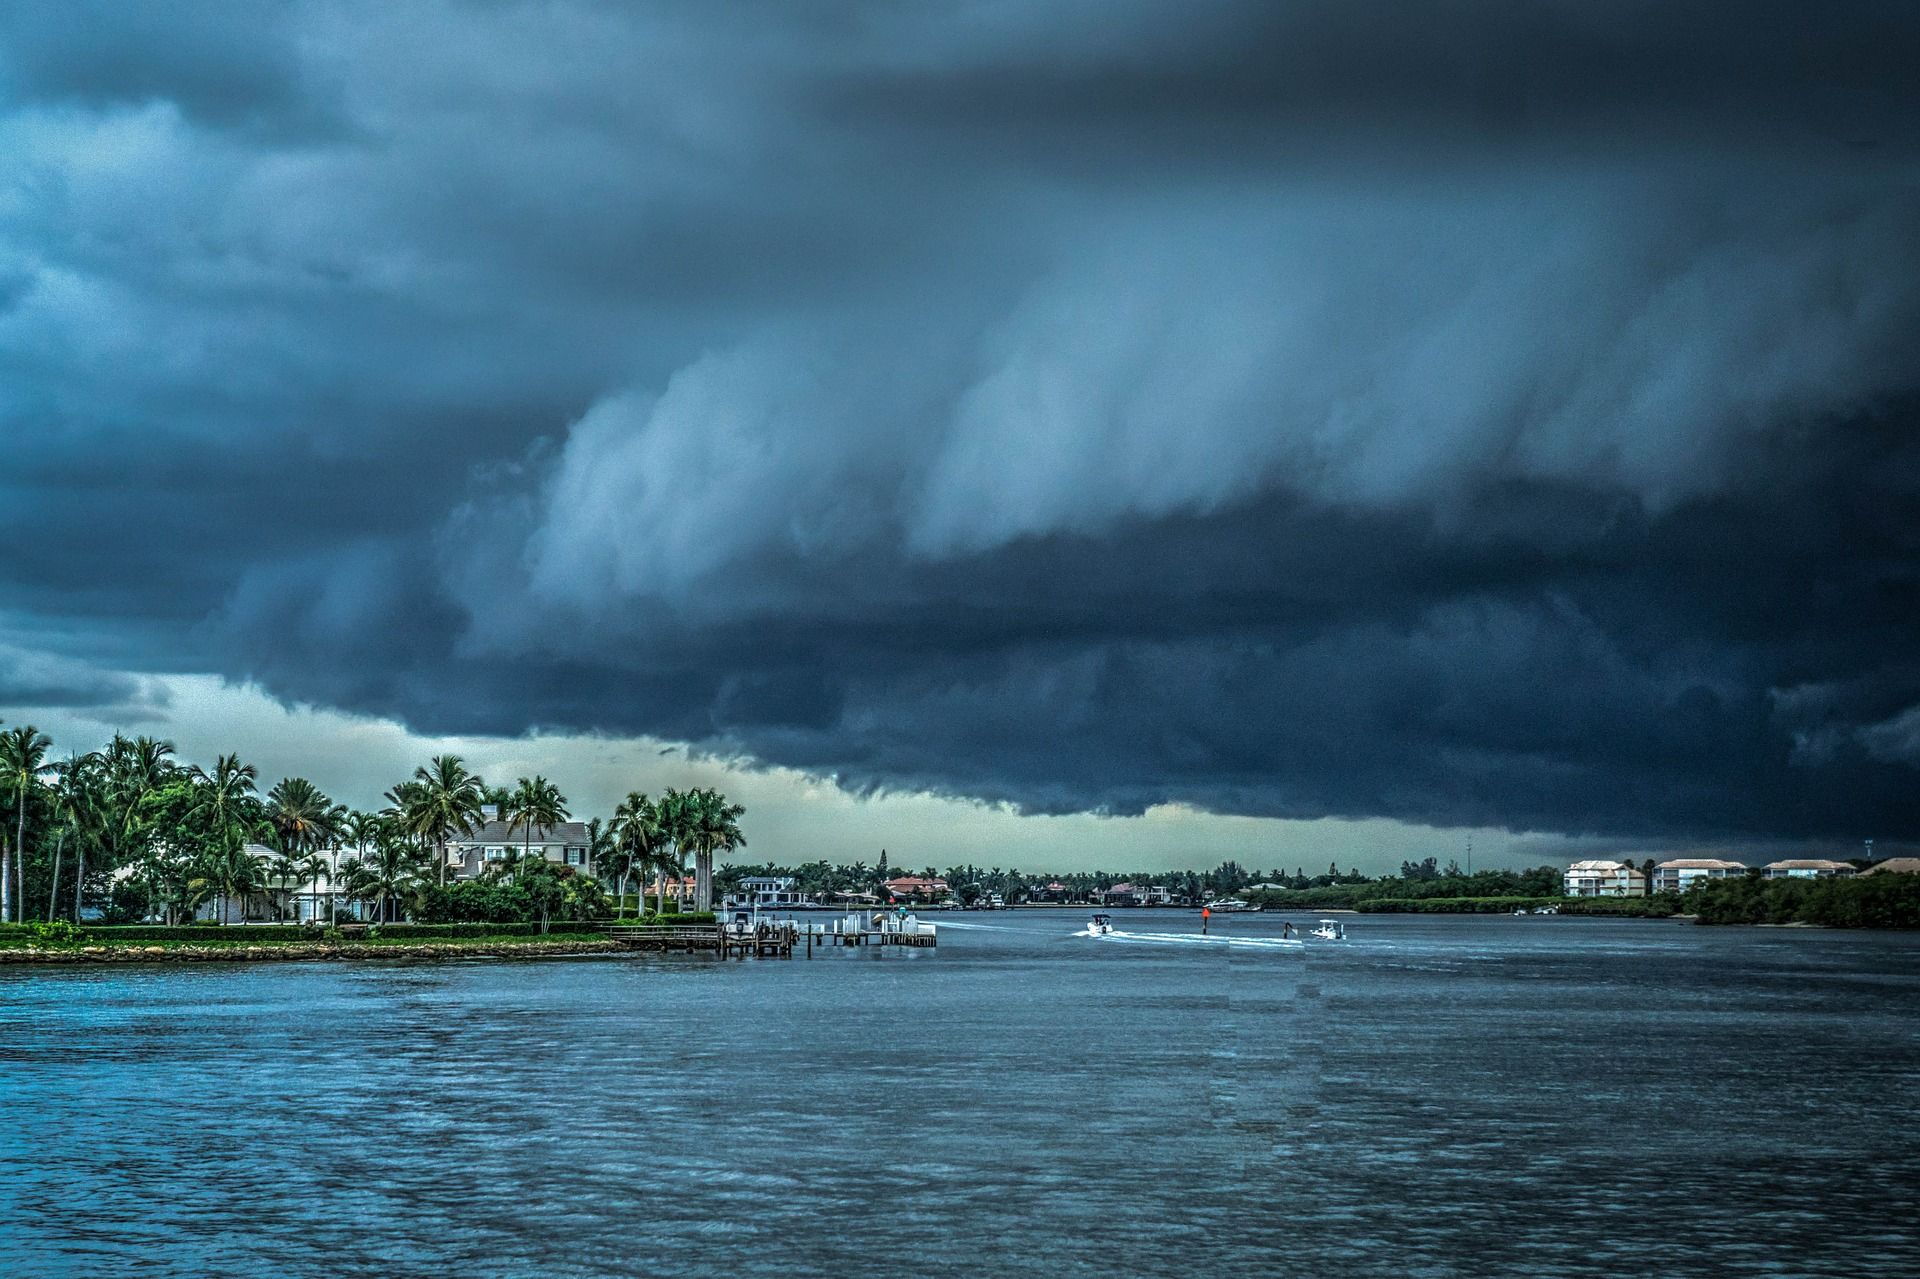 A large dark storm cloud moving over open water toward land with houses and palm trees.